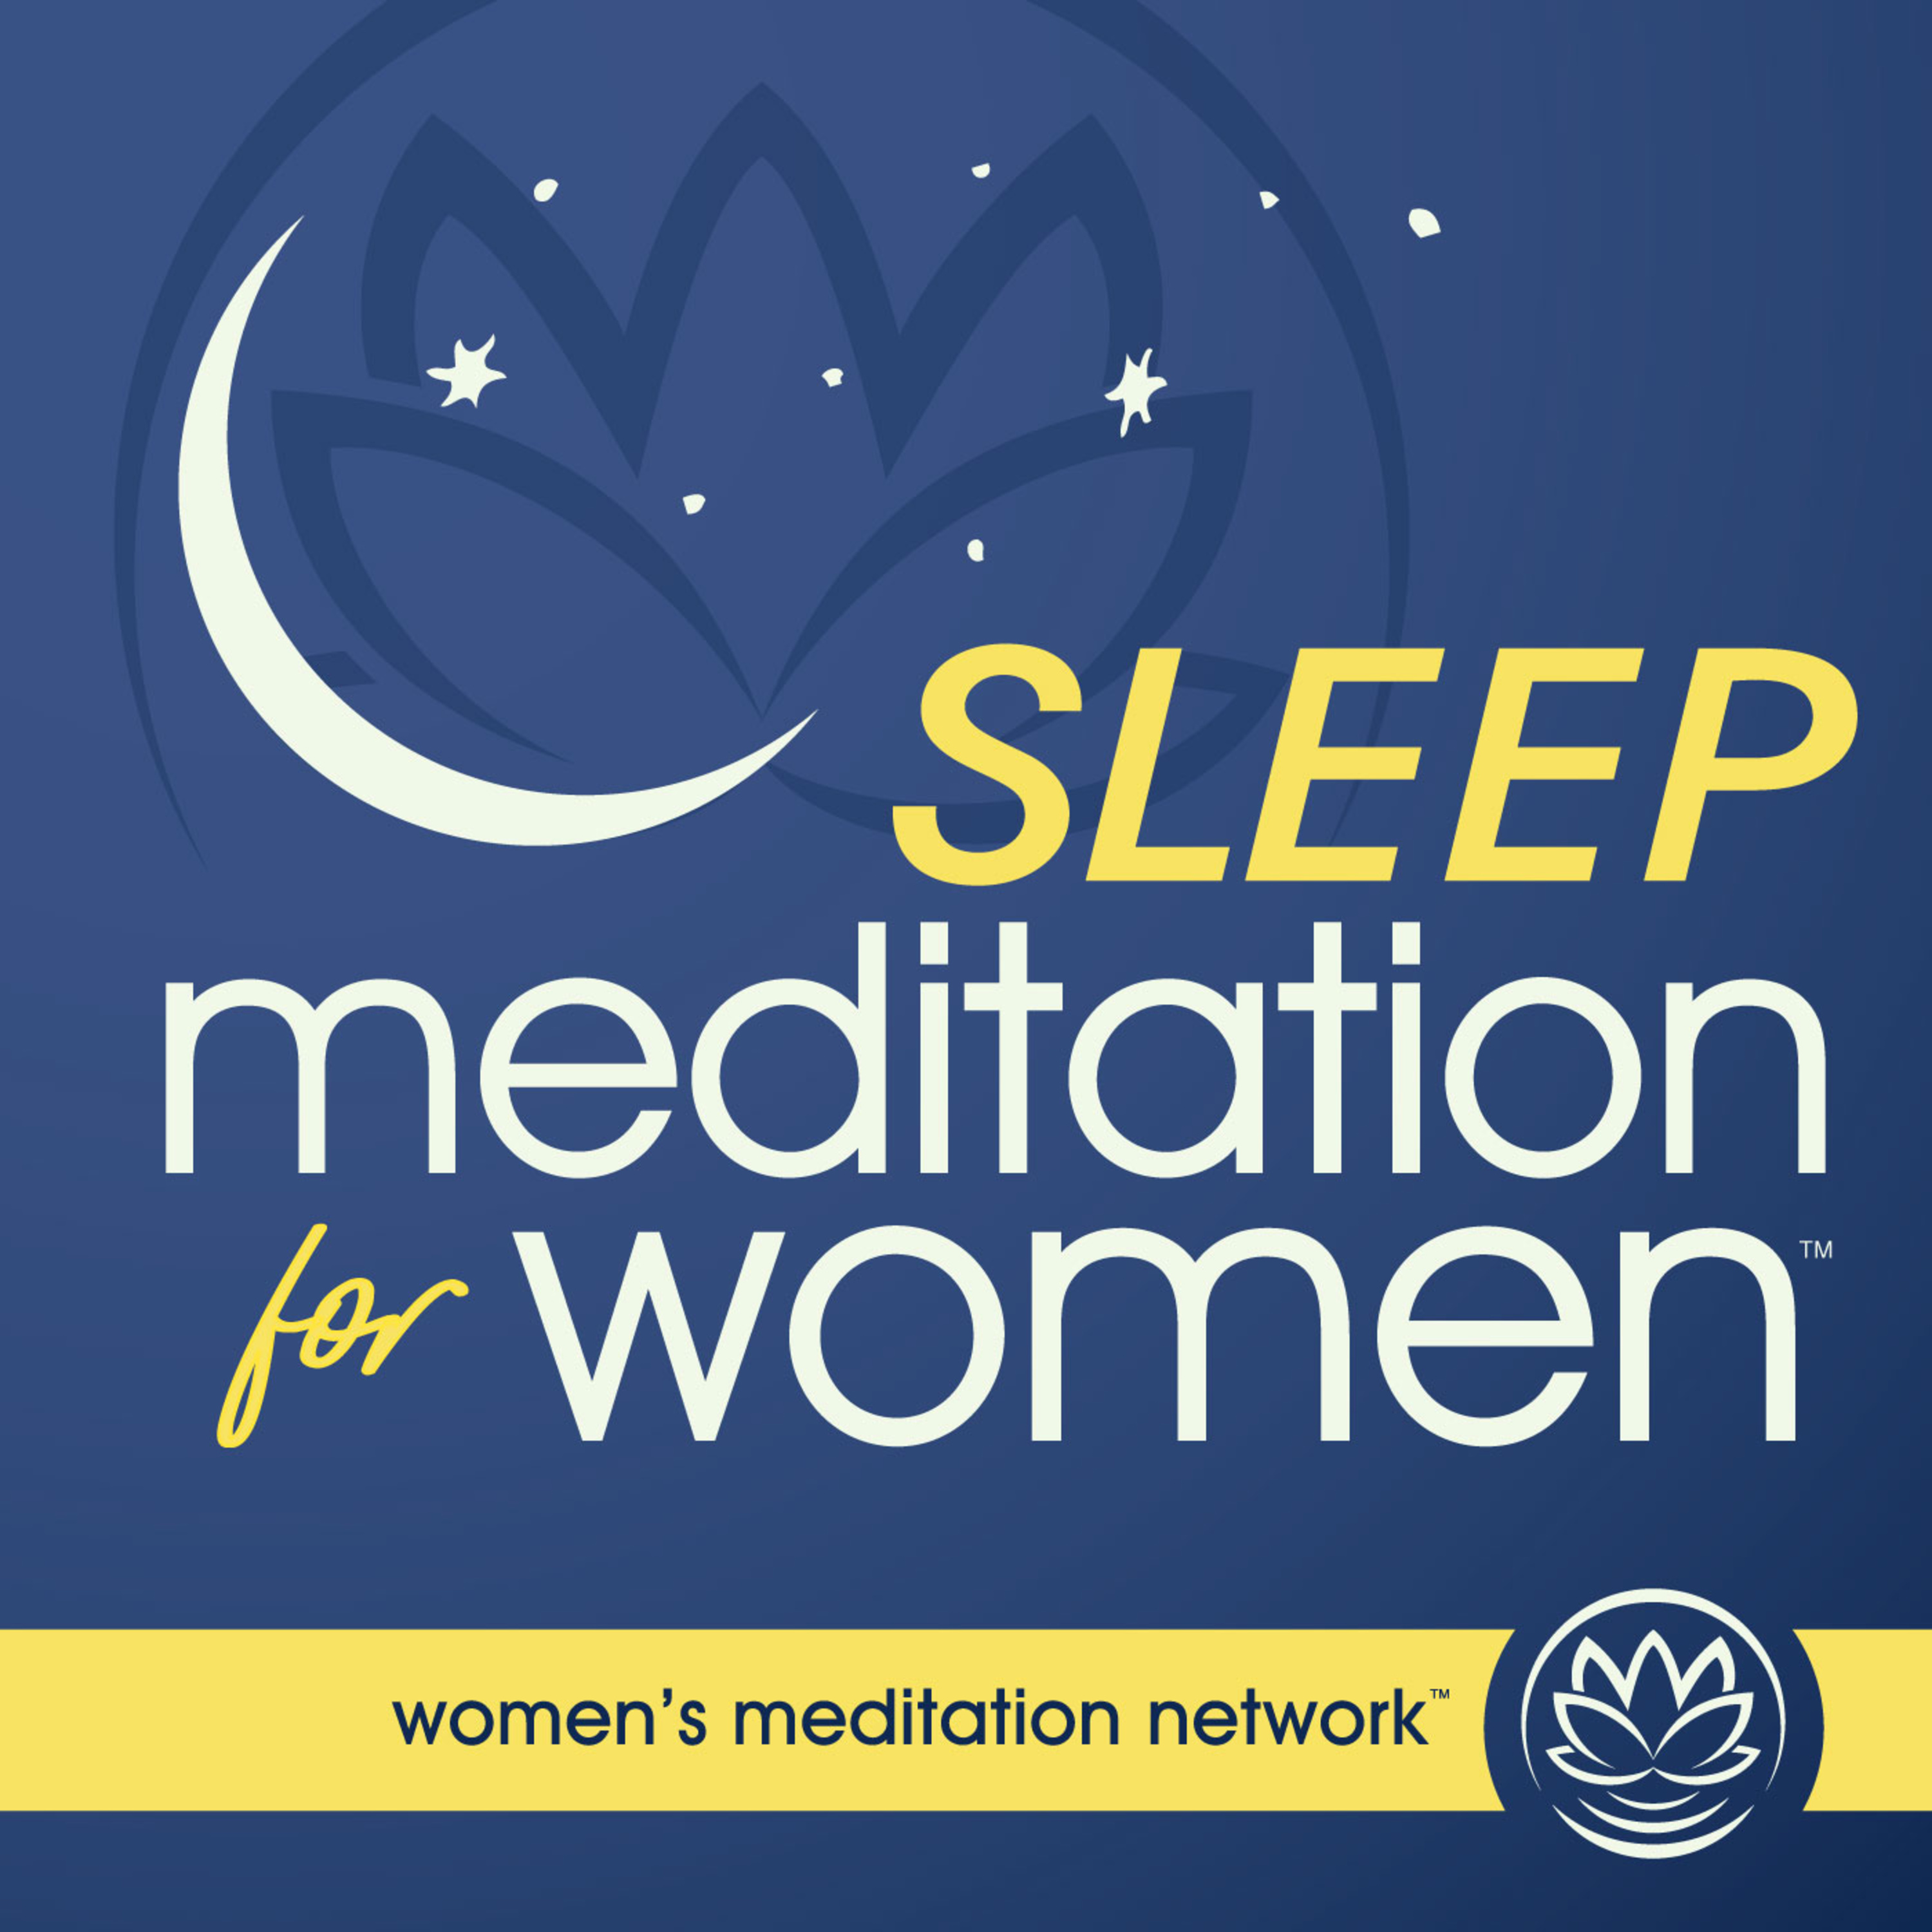 Meditation: Nighttime Stretch and Relaxation Meditation 😴- from Sleep Meditation for Women